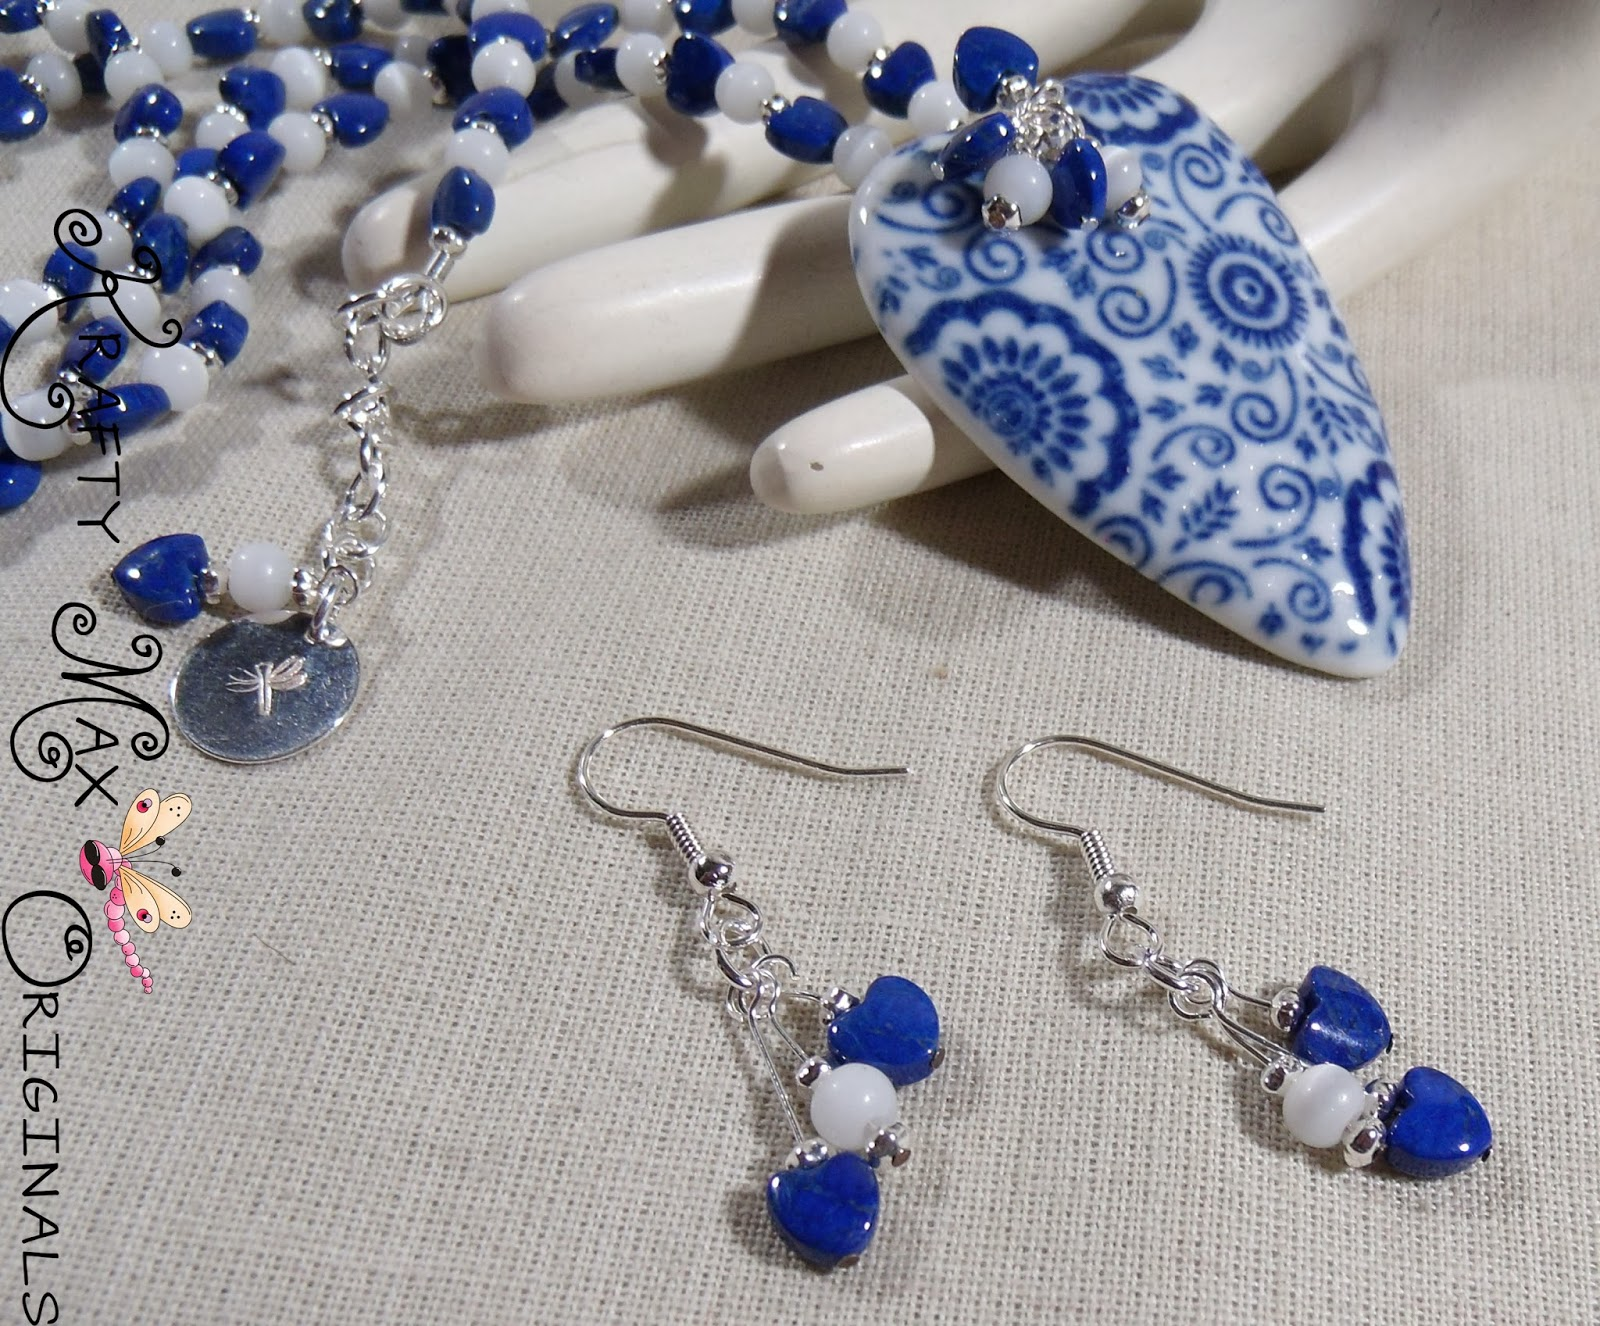 http://www.lajuliet.com/index.php/2013-01-04-15-21-51/ad/gemstone,92/exclusive-blue-and-white-ceramic-and-gemstone-beauty-necklace-set-a-krafty-max-original-design,240